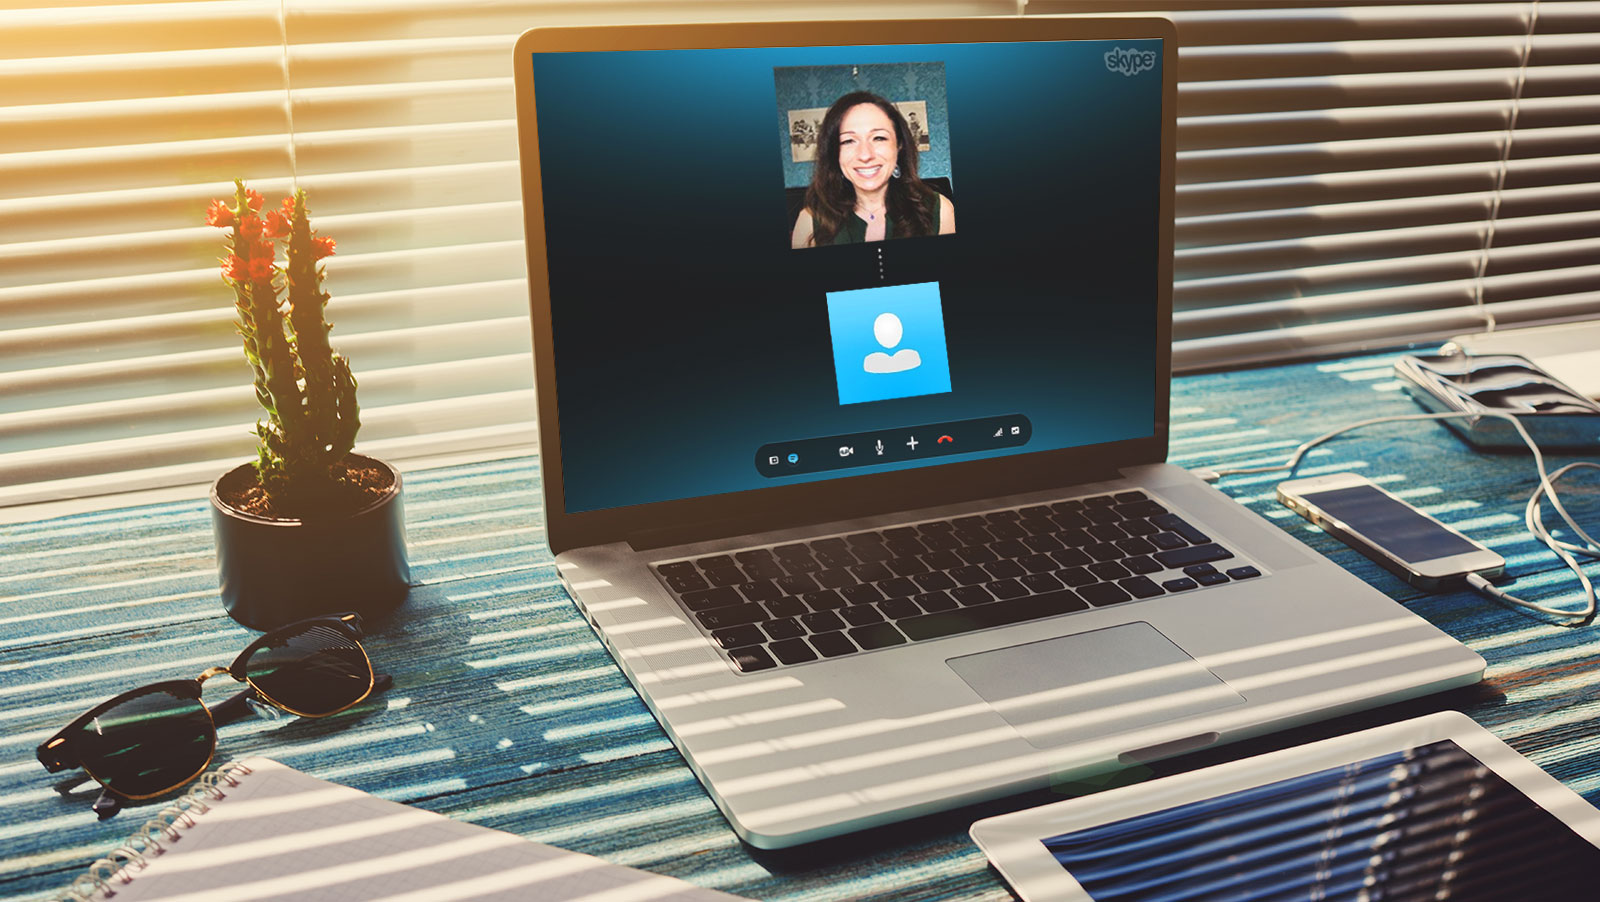 Becky's Affiliated: Top tips on how to film the best Skype video interview